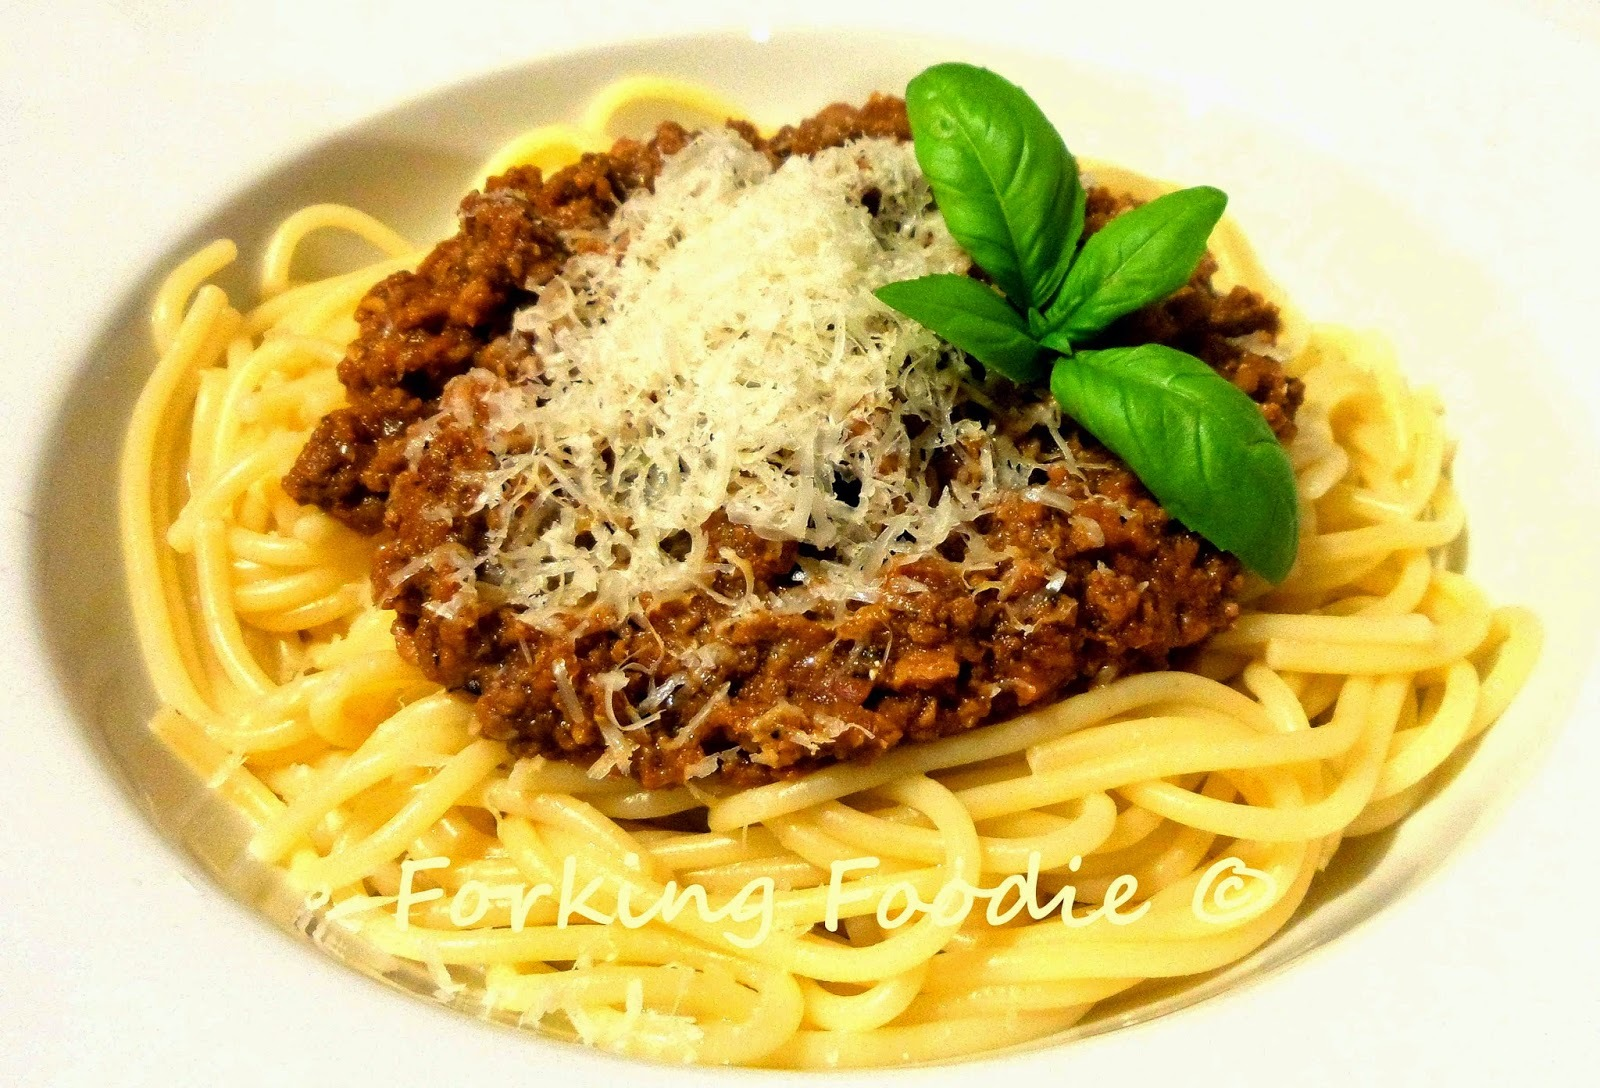 Thermomix Chunky Ragù alla Bolognese - with skinny option, and no more mushy meat sauce!